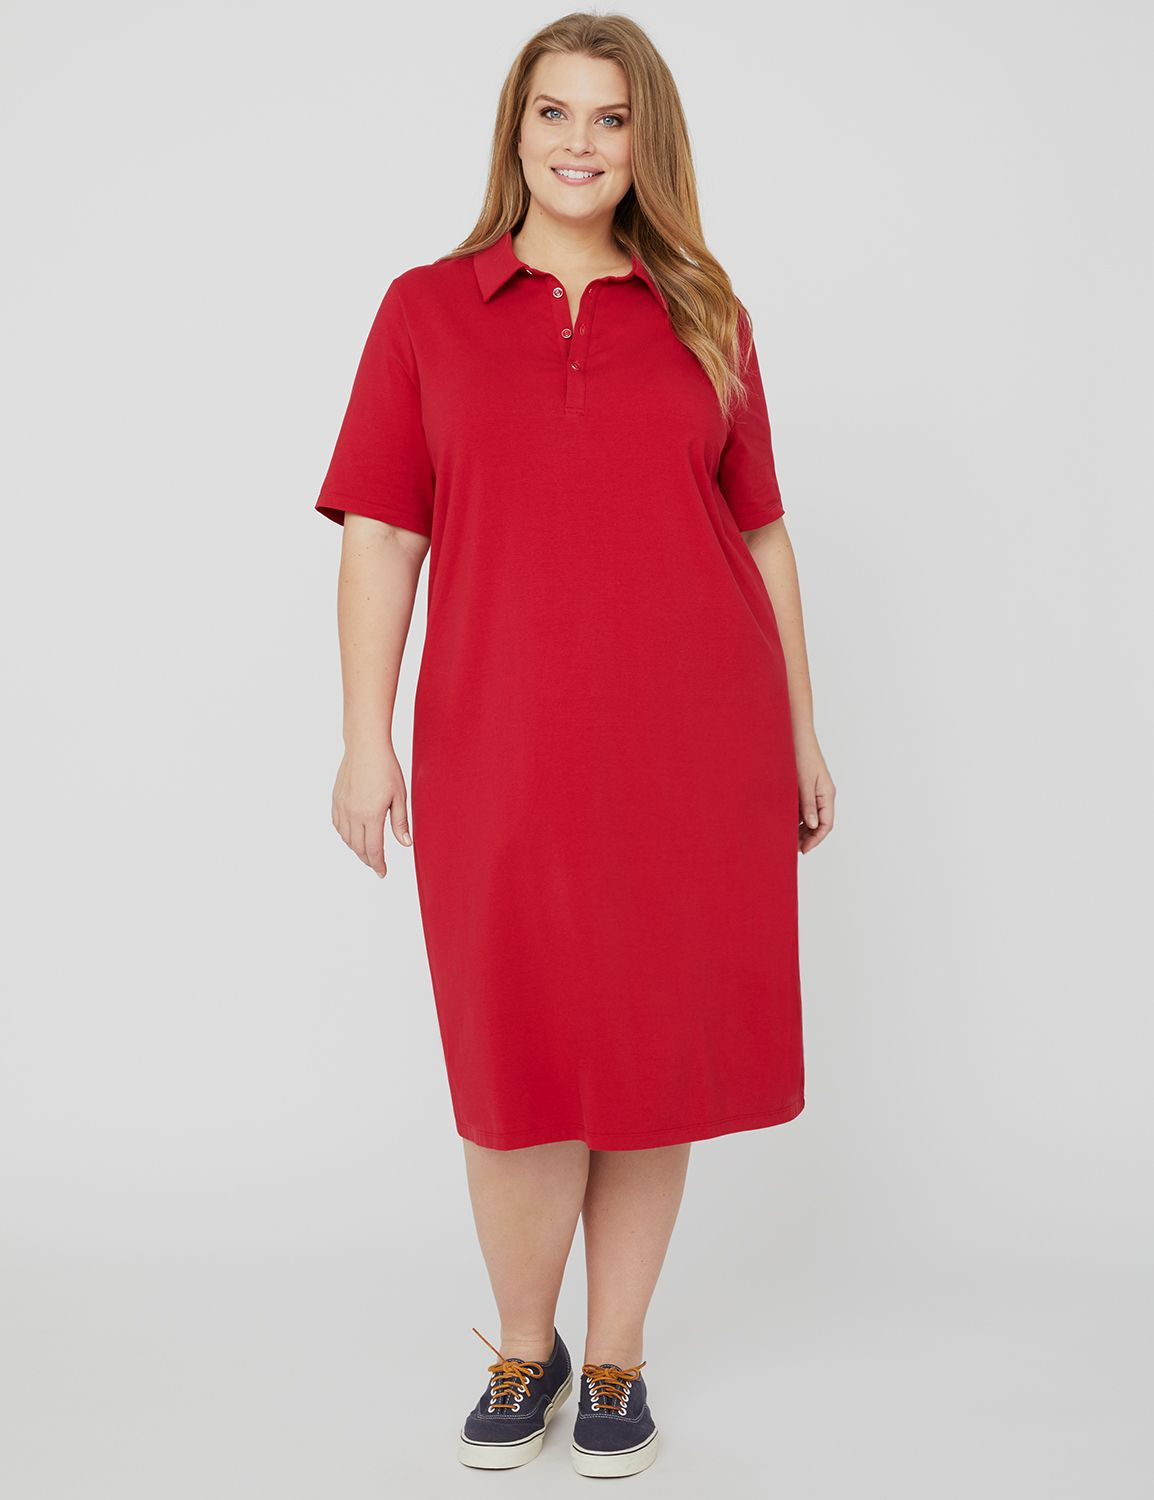 Suprema Polo Dress 1090899 Suprema Polo Dress MP-300105858